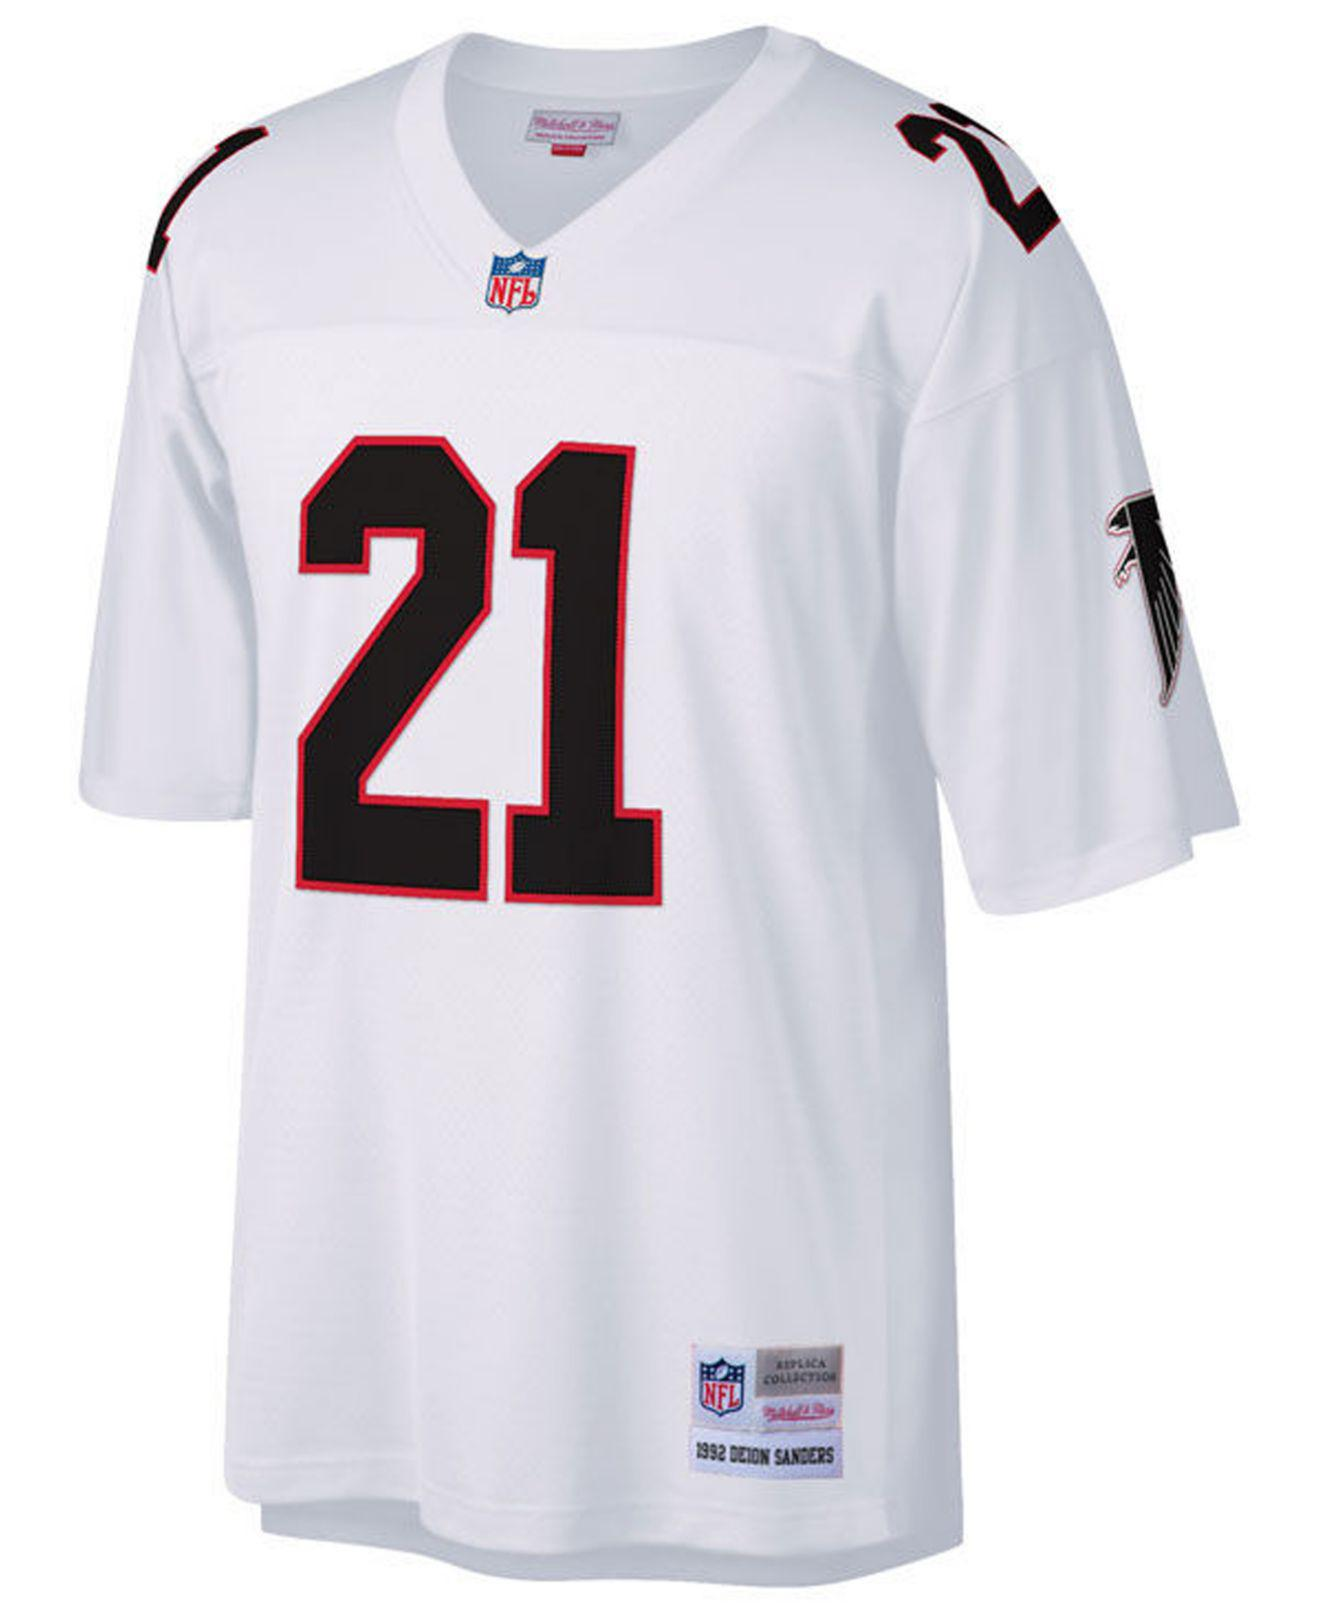 the best attitude be2b0 1fba7 Men's White Deion Sanders Atlanta Falcons Replica Throwback Jersey